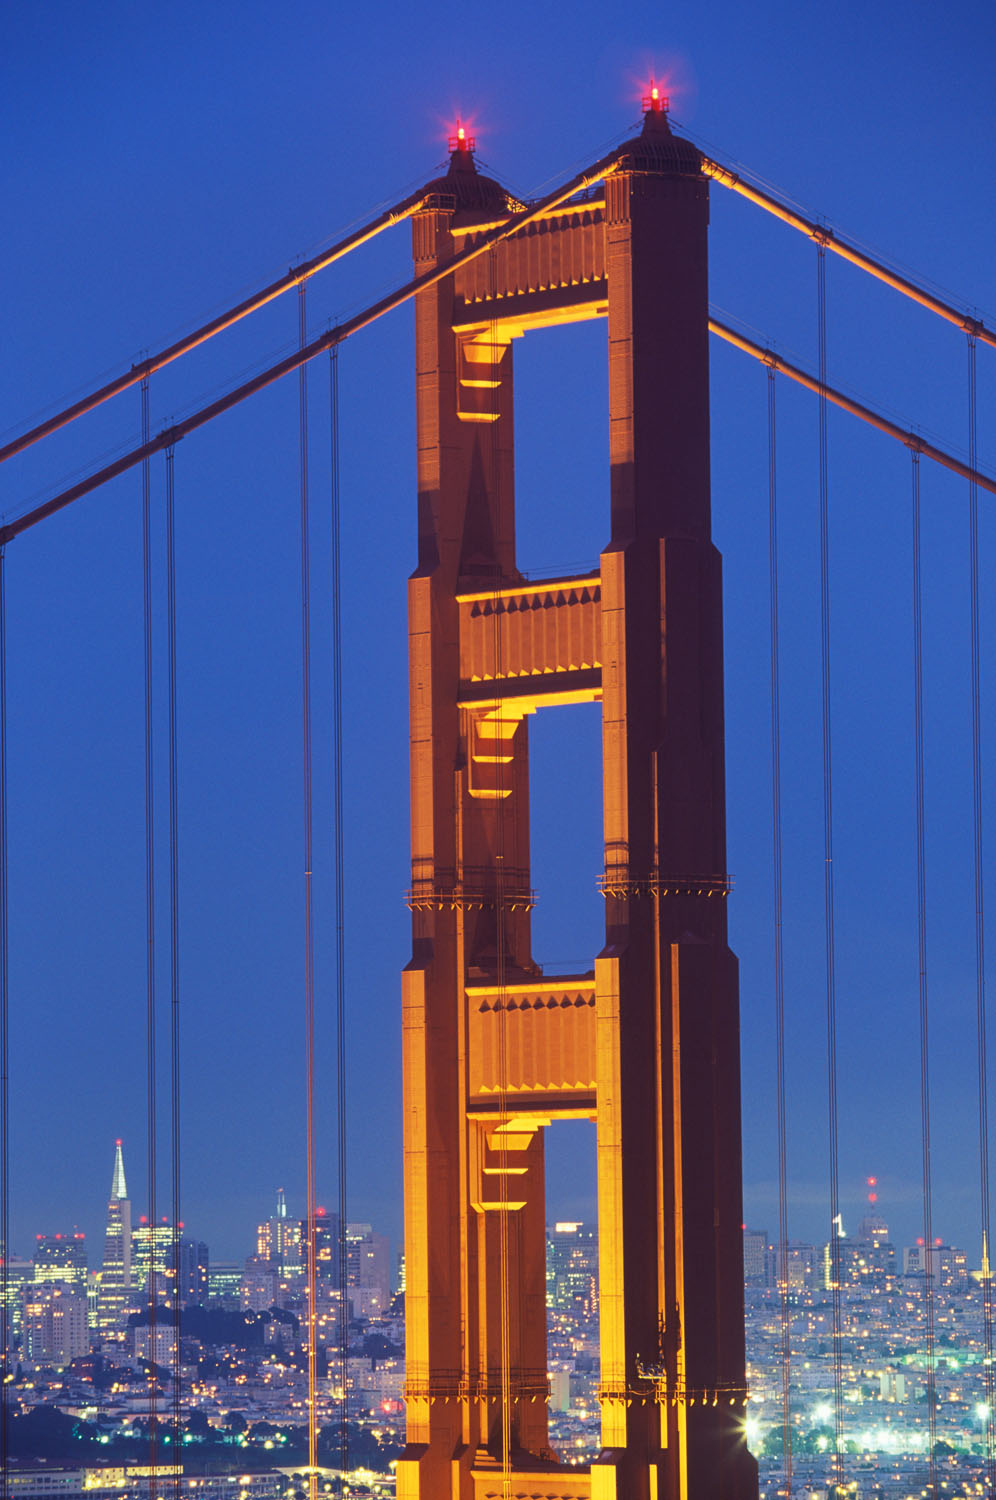 Golden Gate Bridge photographed with a 70-200mm zoom lens